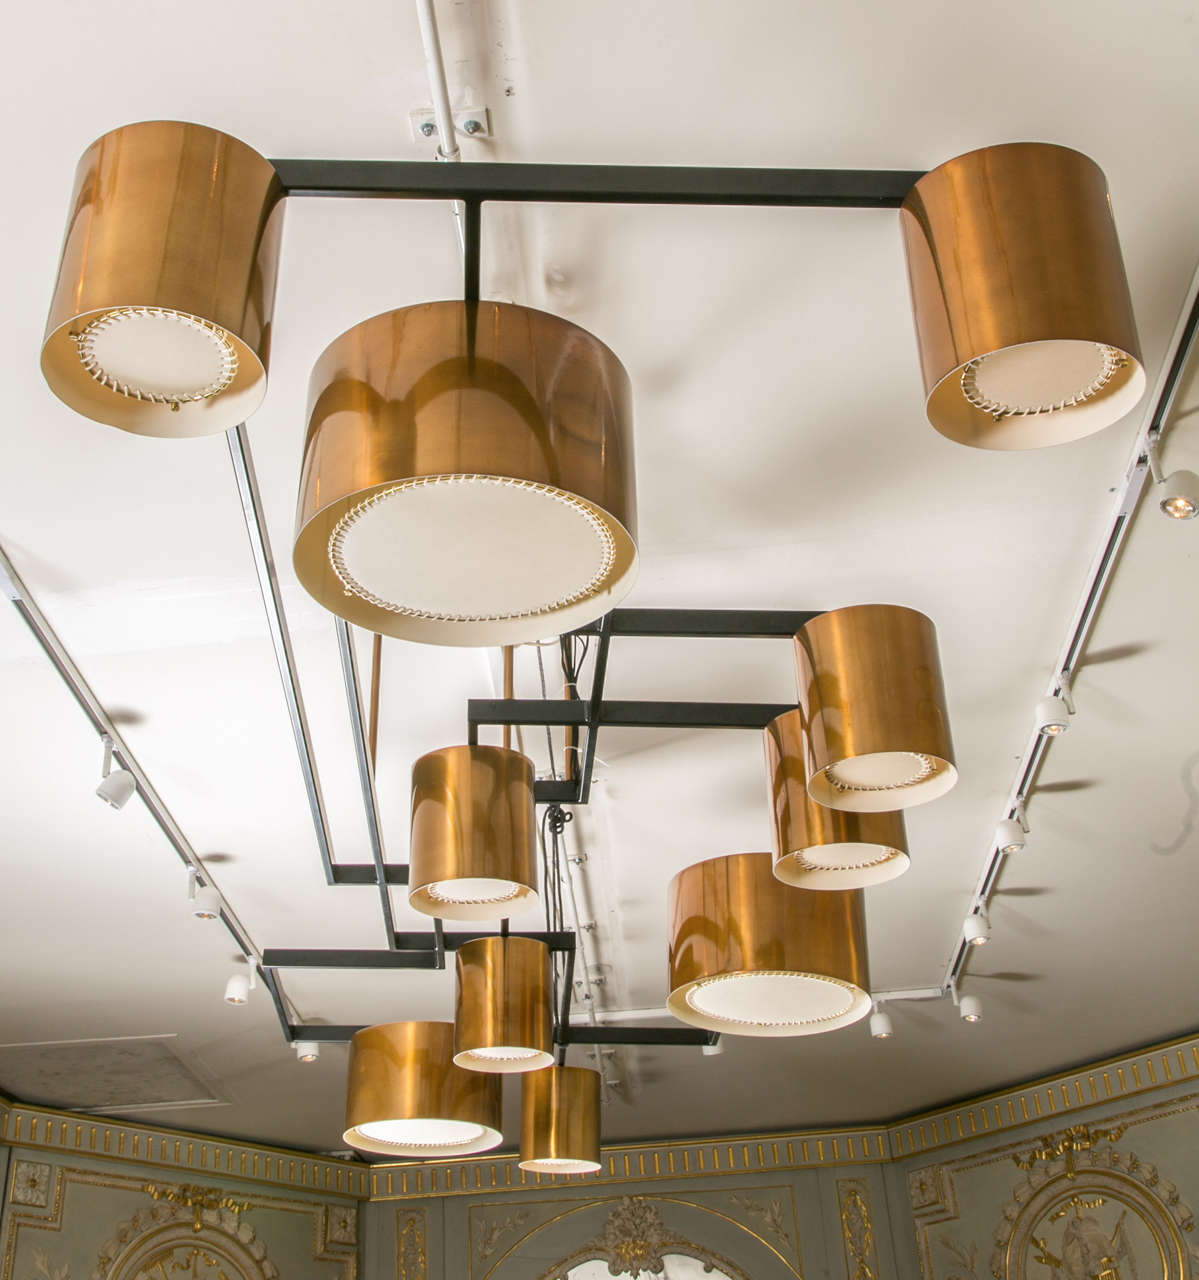 Huge chandelier with 10 copper shades, totally rewired, prototype realized by an architect